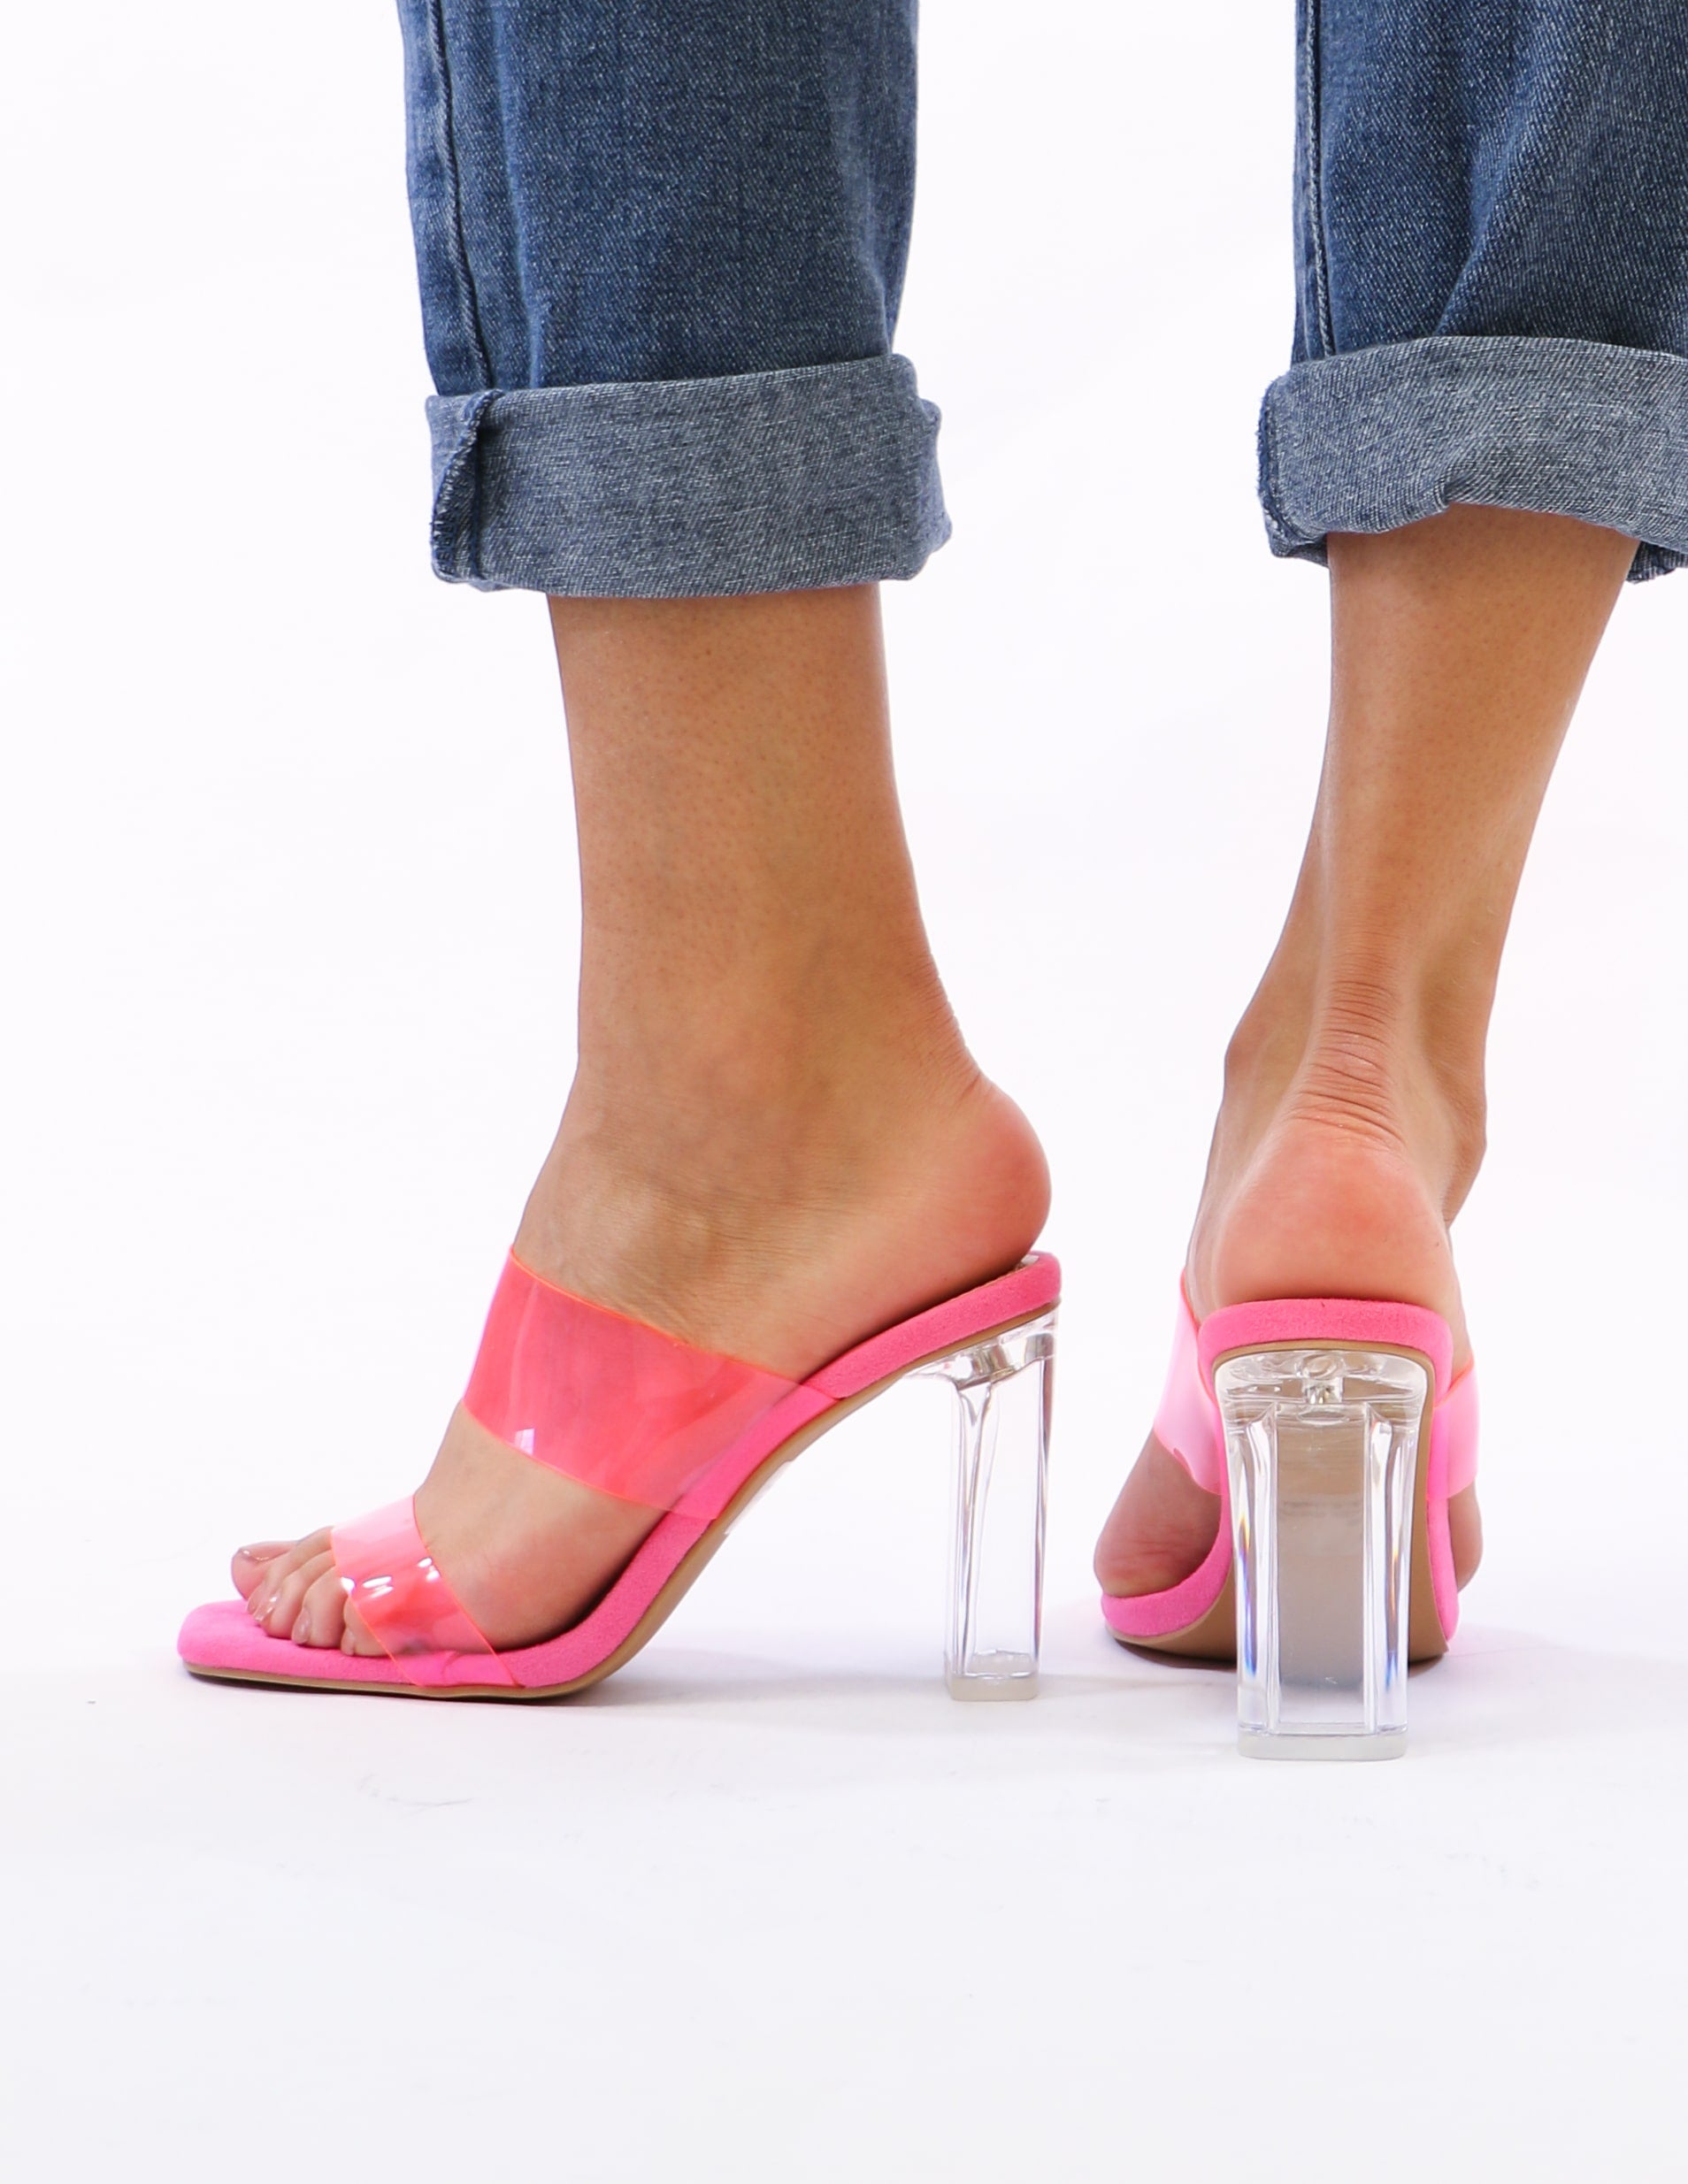 model standing in pink crystal heels - elle bleu shoes